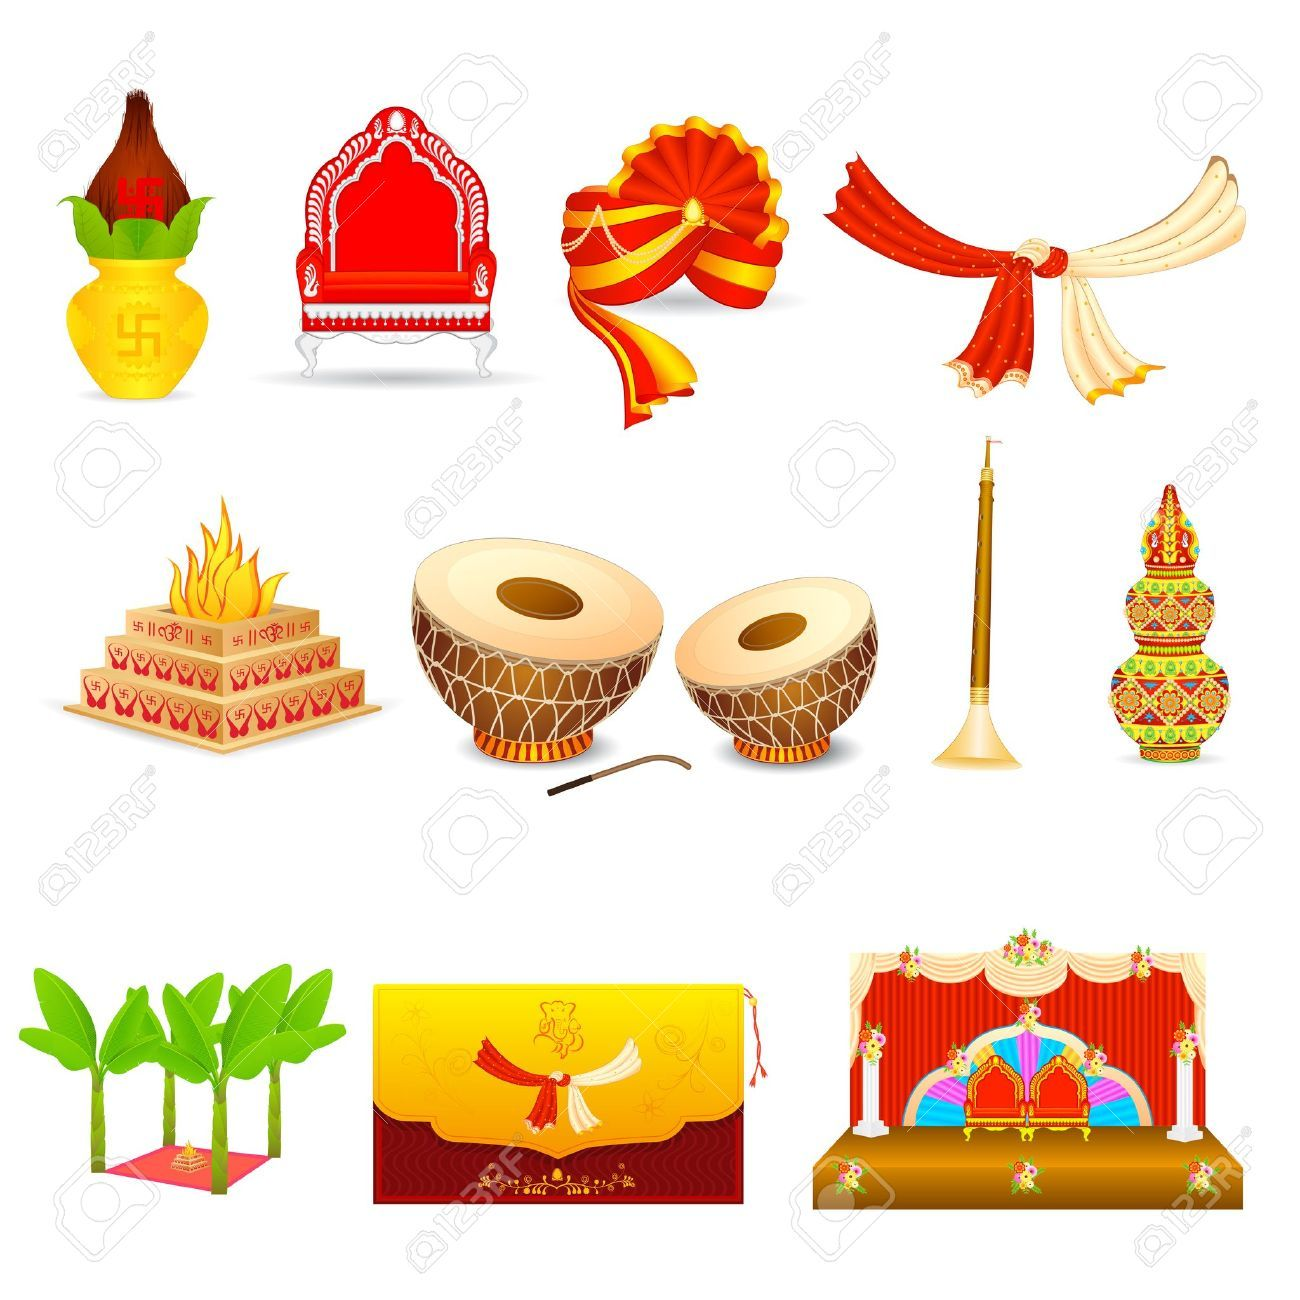 medium resolution of indian wedding cliparts clipart collection